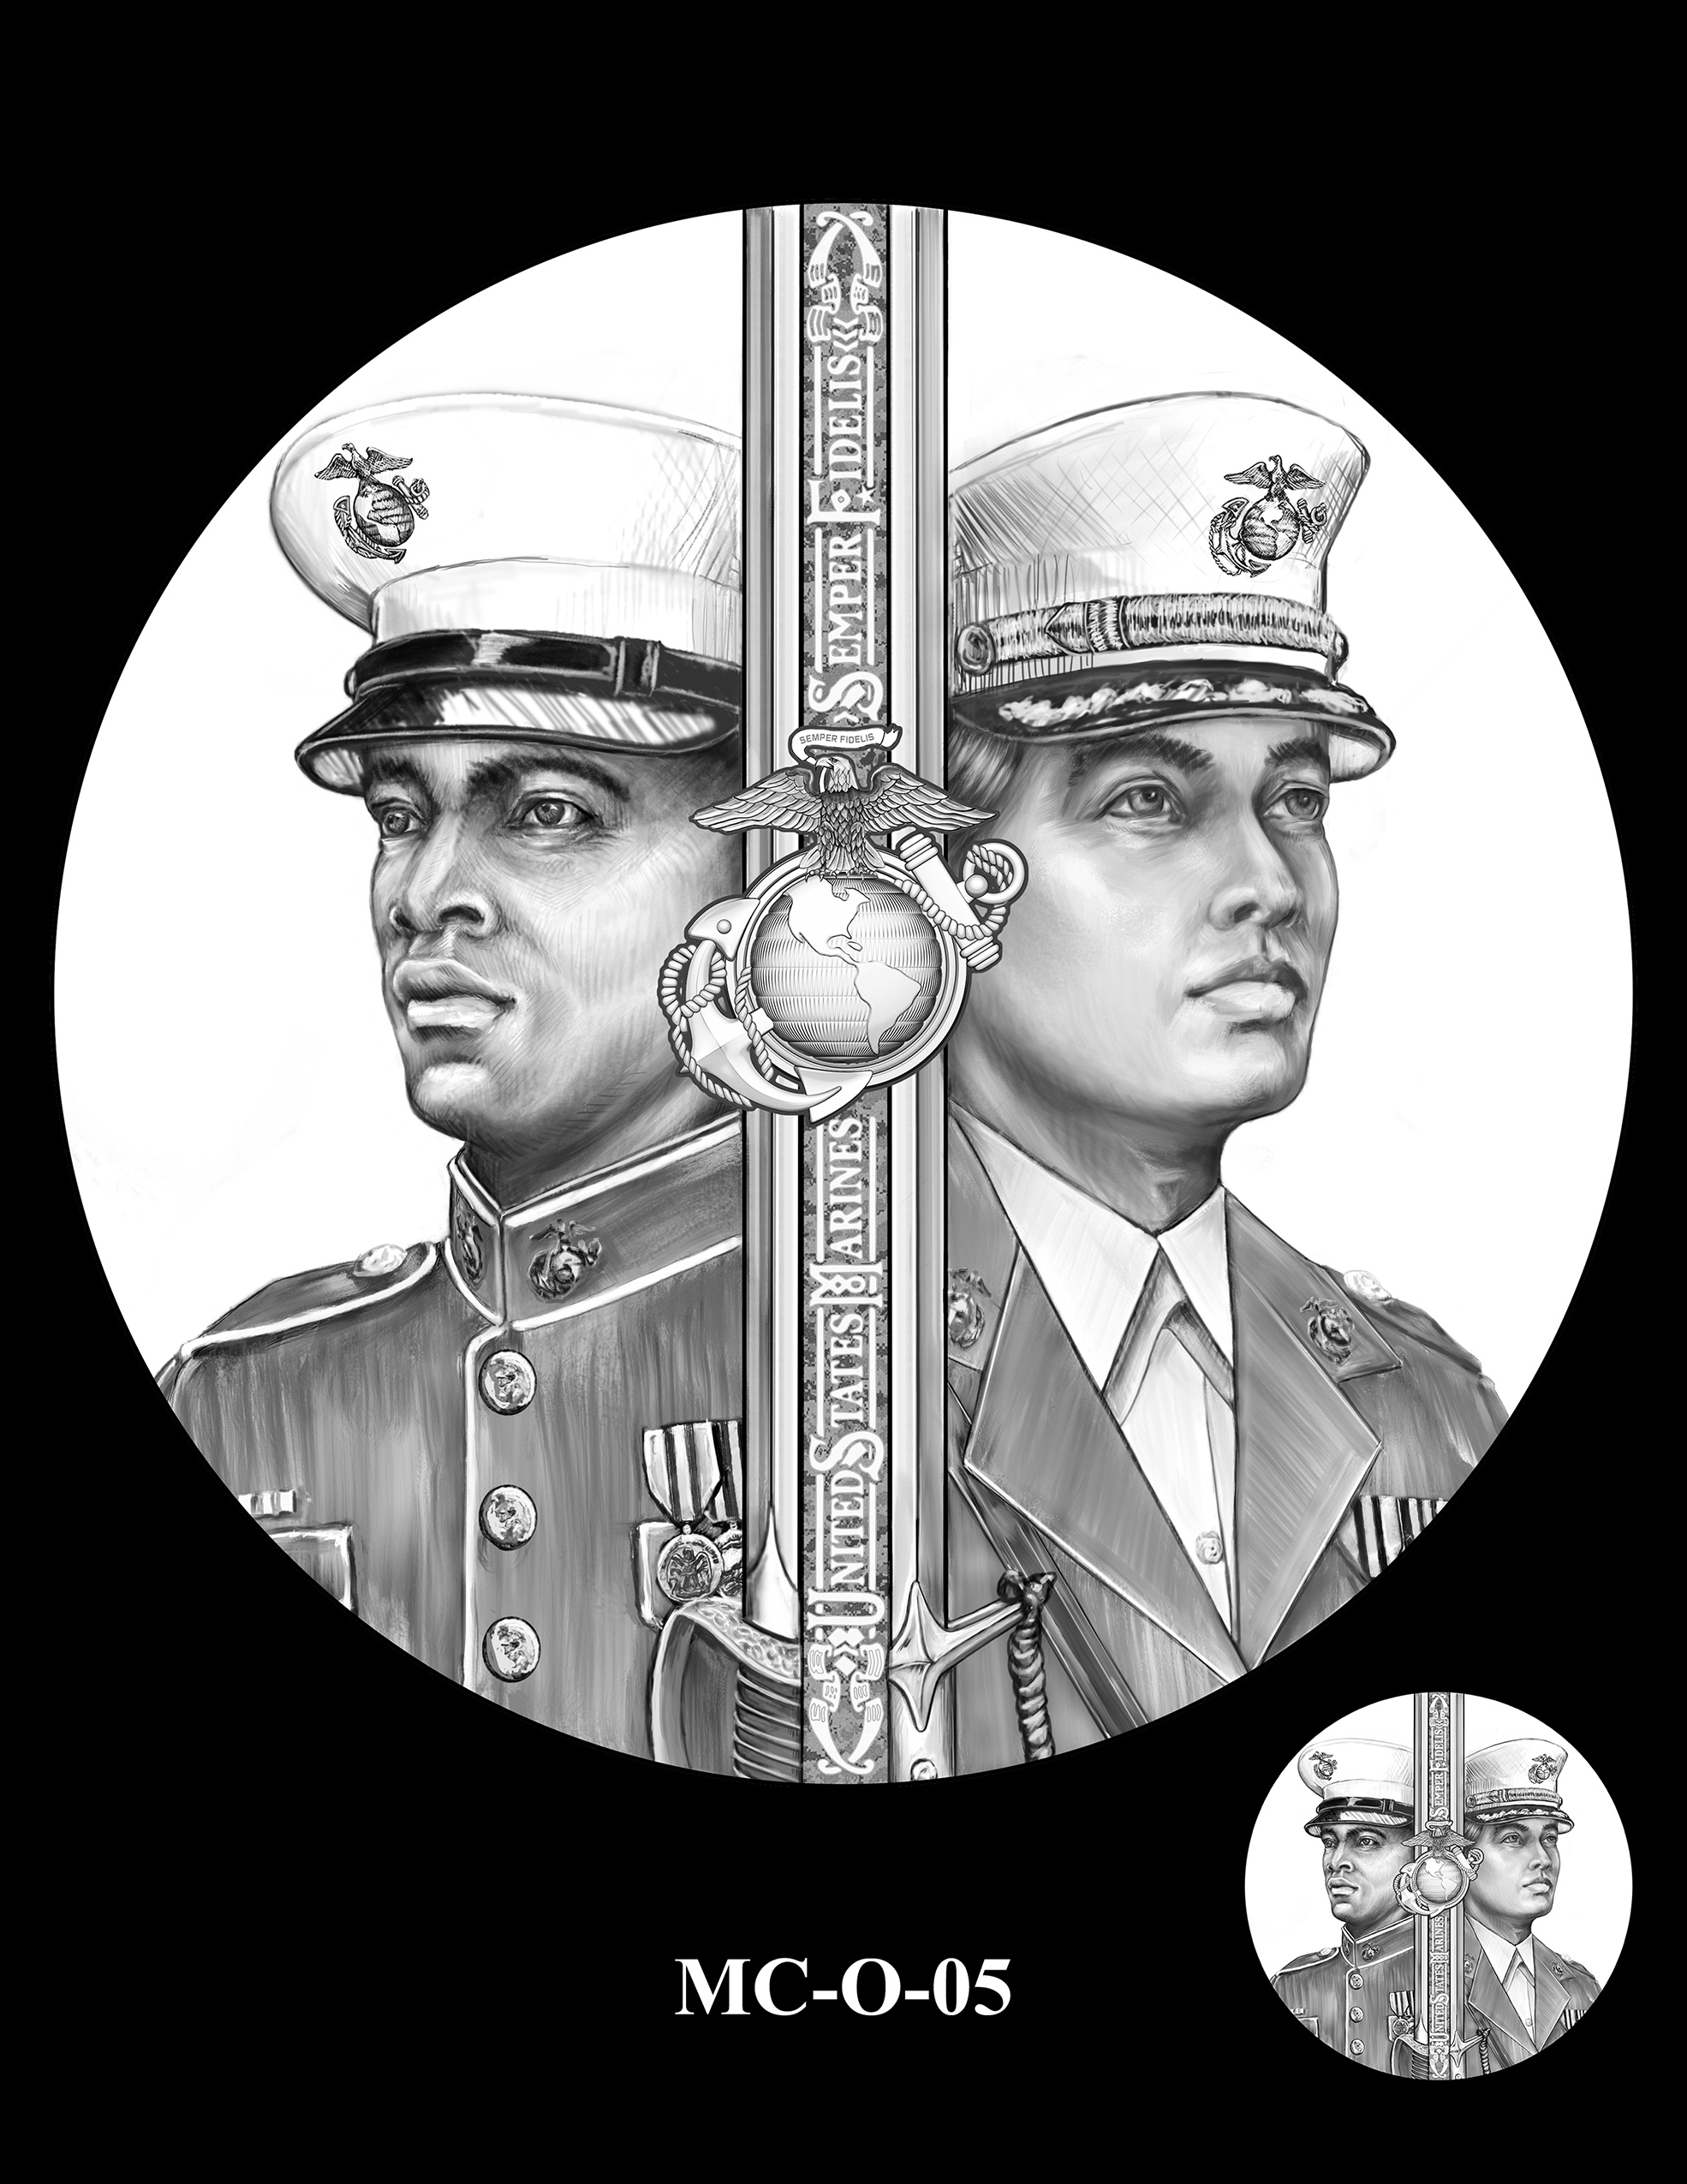 MC-O-05 -- United States Marine Corps Silver Medal